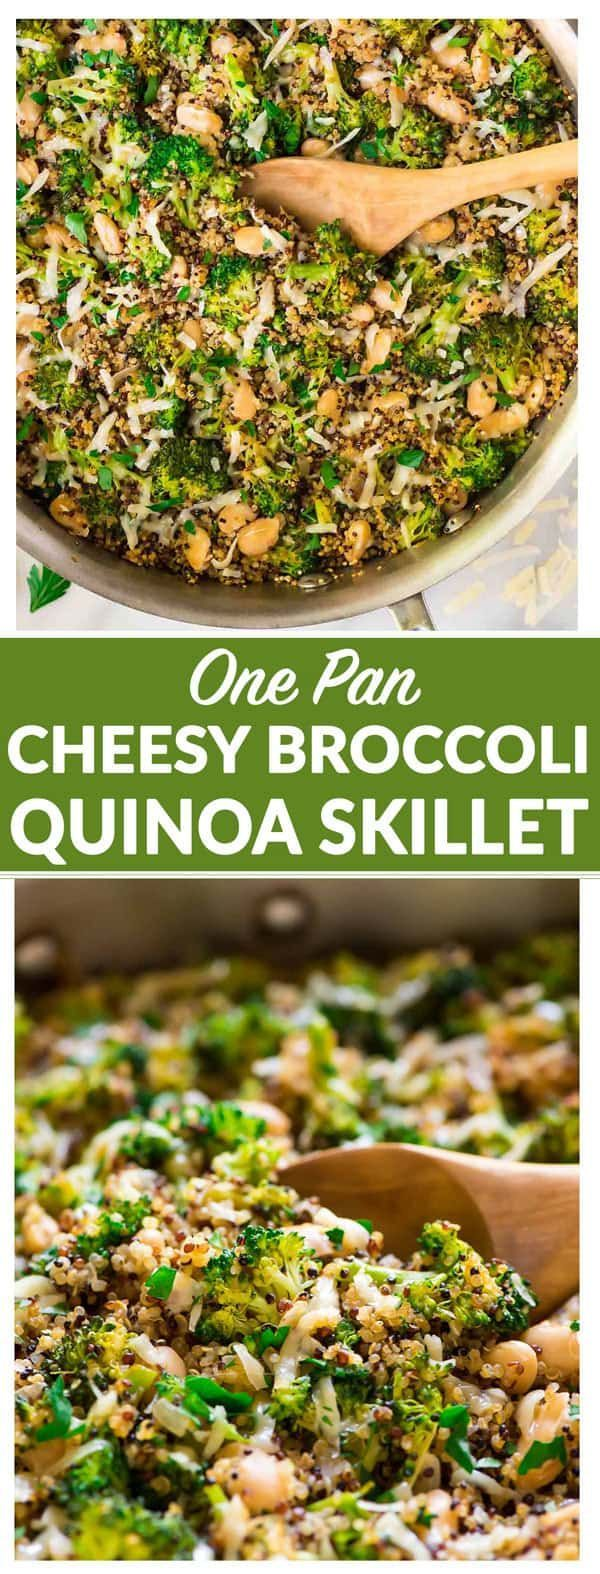 One Pan Cheesy Broccoli Quinoa Skillet with Parmesan and White Beans. An easy and filling vegetarian recipe that's great for quick dinners and healthy meal prep lunches. #vegetarian #glutenfree #healthy via @wellplated